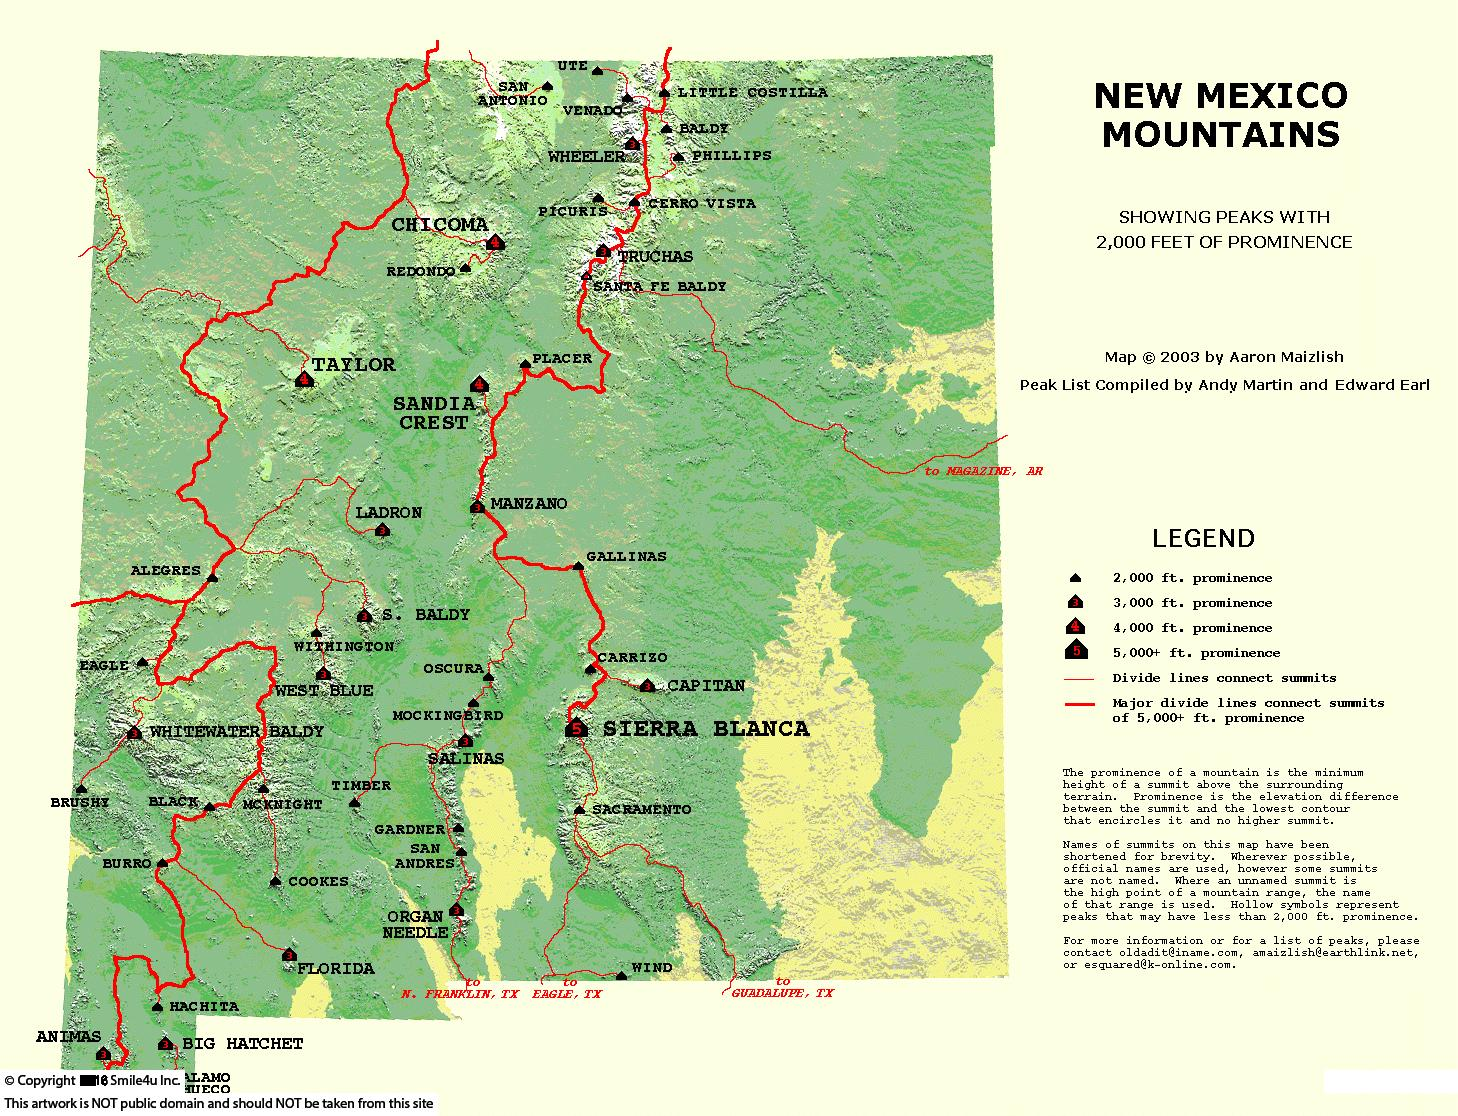 739246_watermarked_newmexicosummits.png